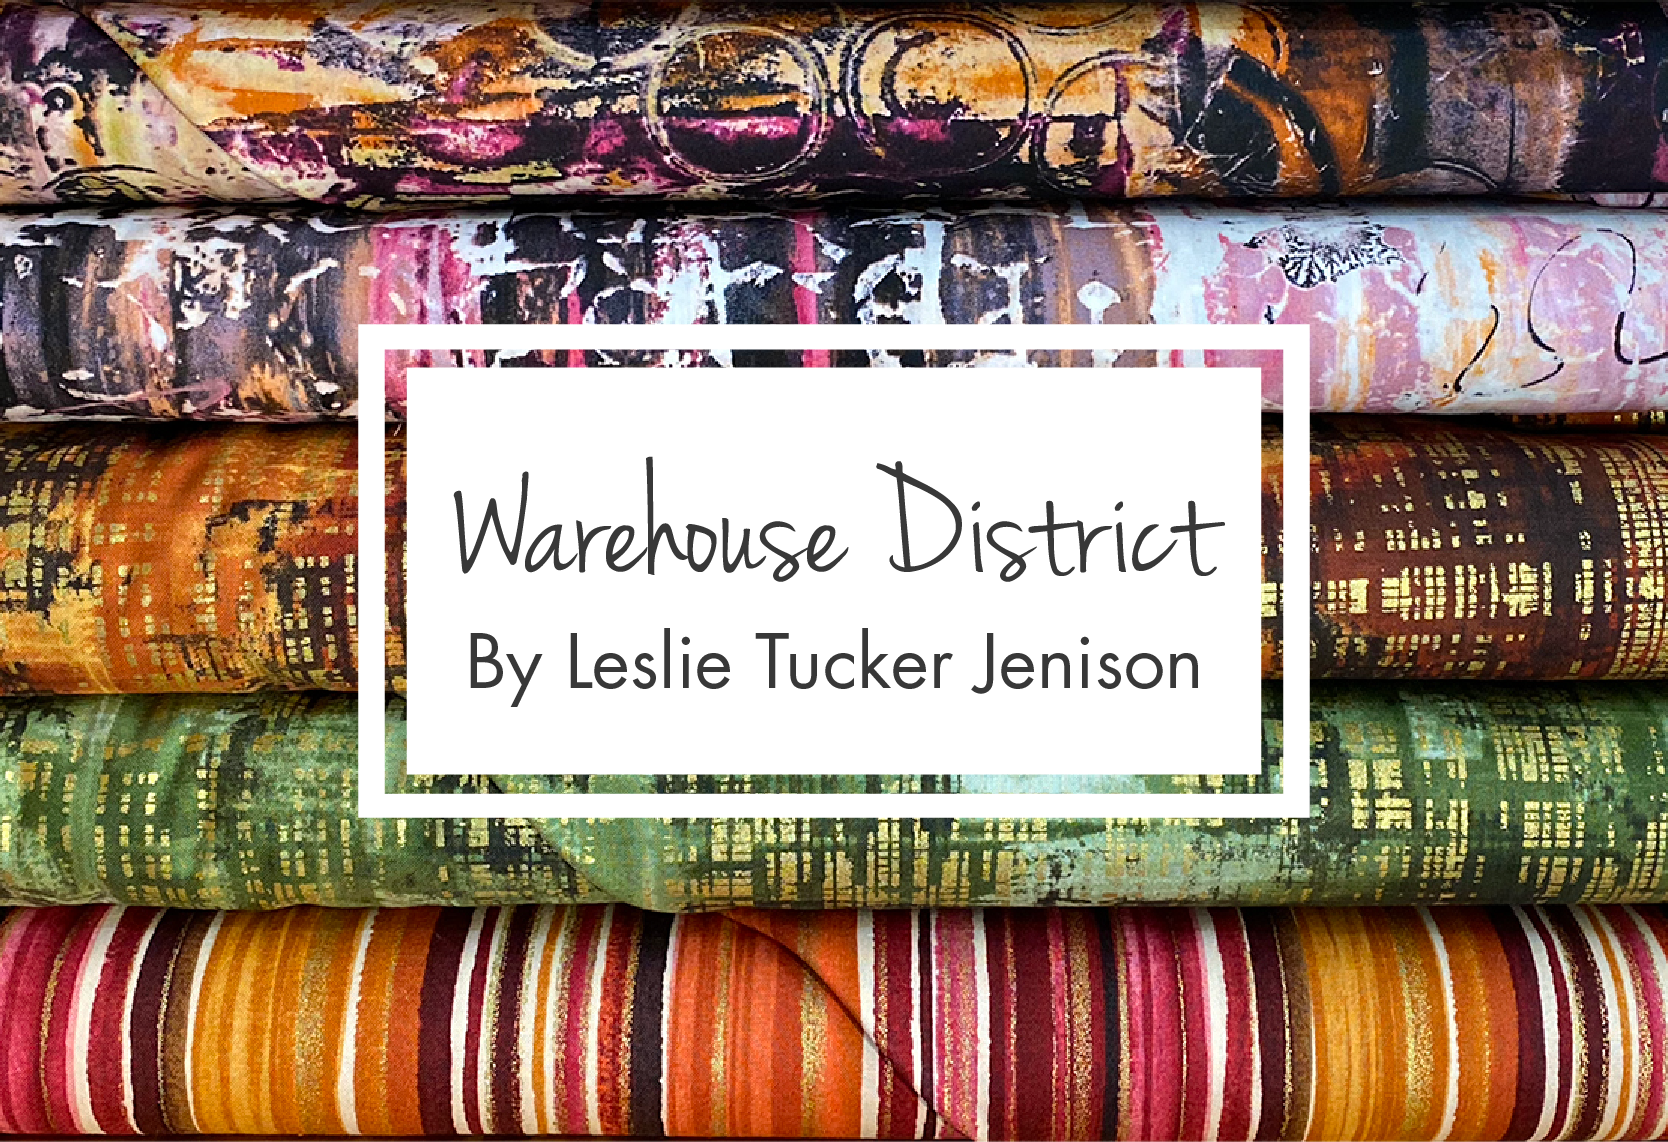 Warehouse District by Leslie Tucker Jenison